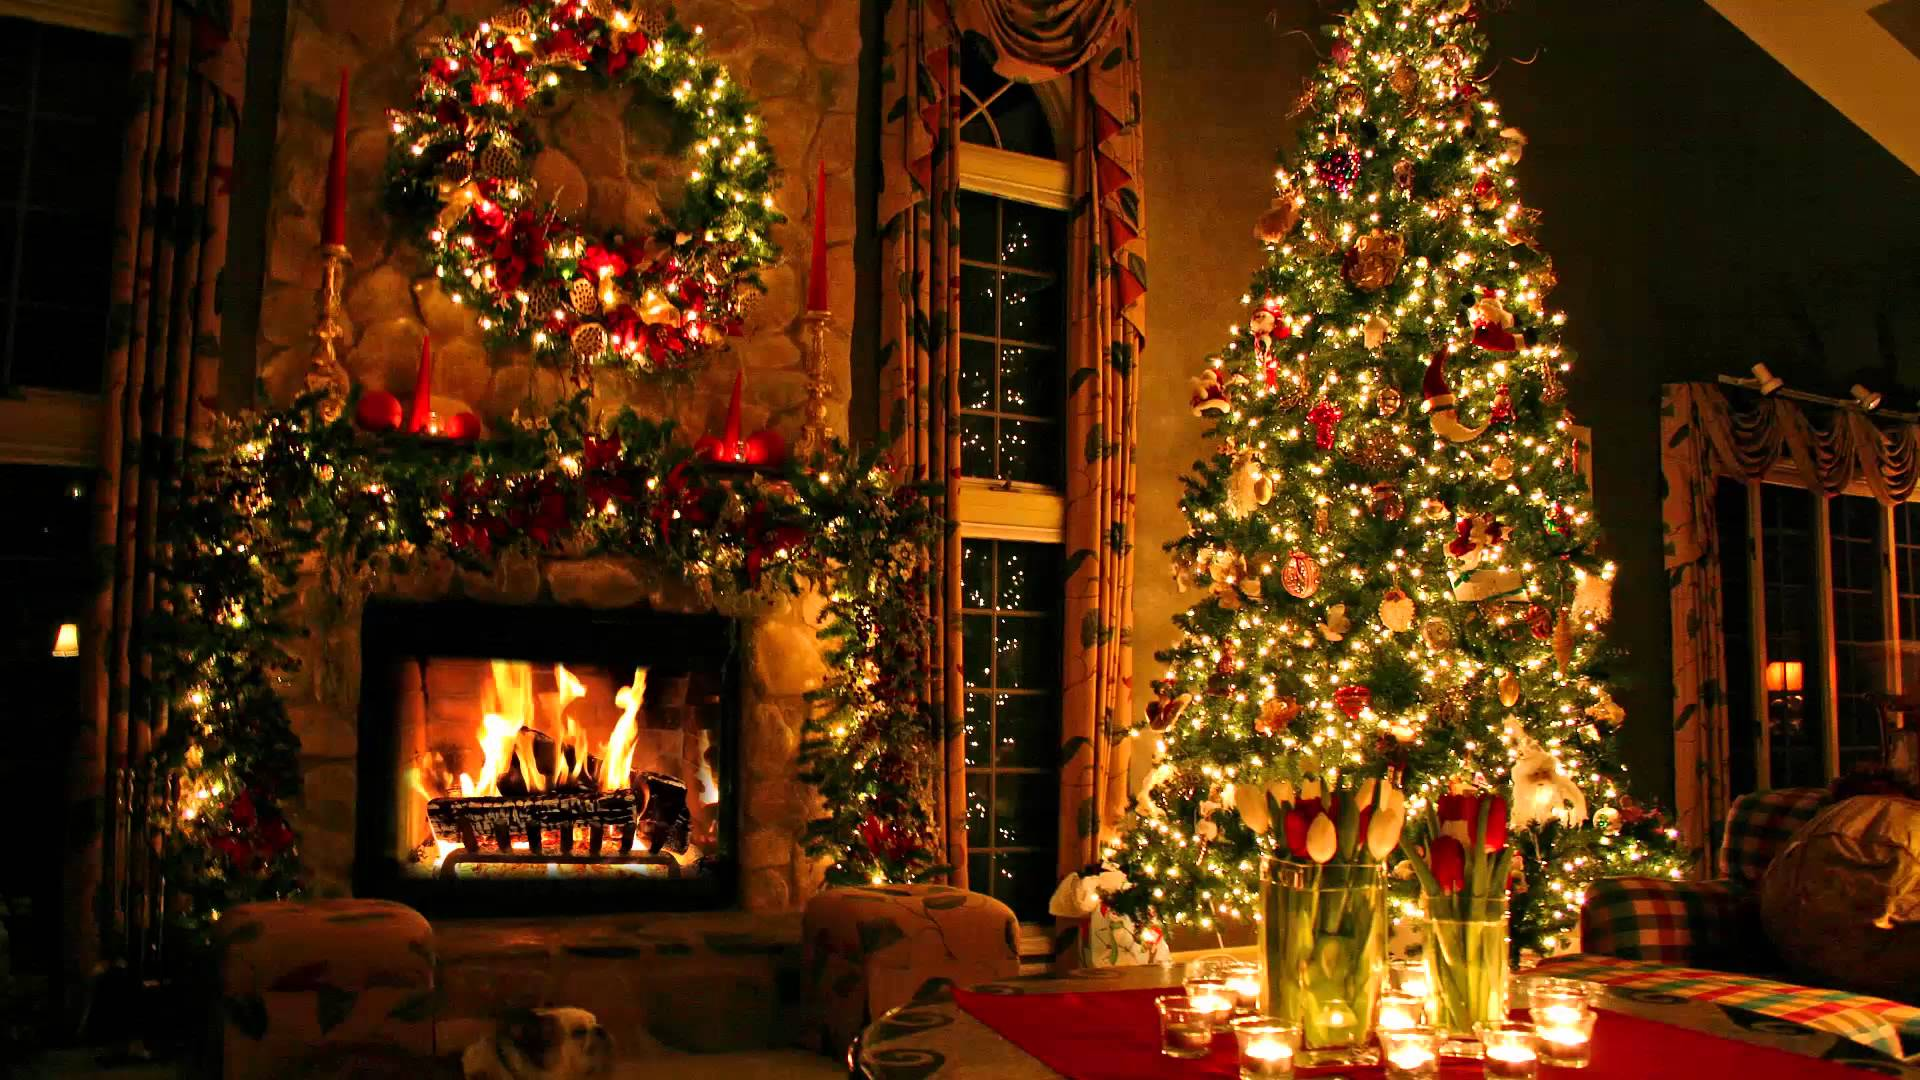 Harry Potter Christmas Wallpapers Top Free Harry Potter